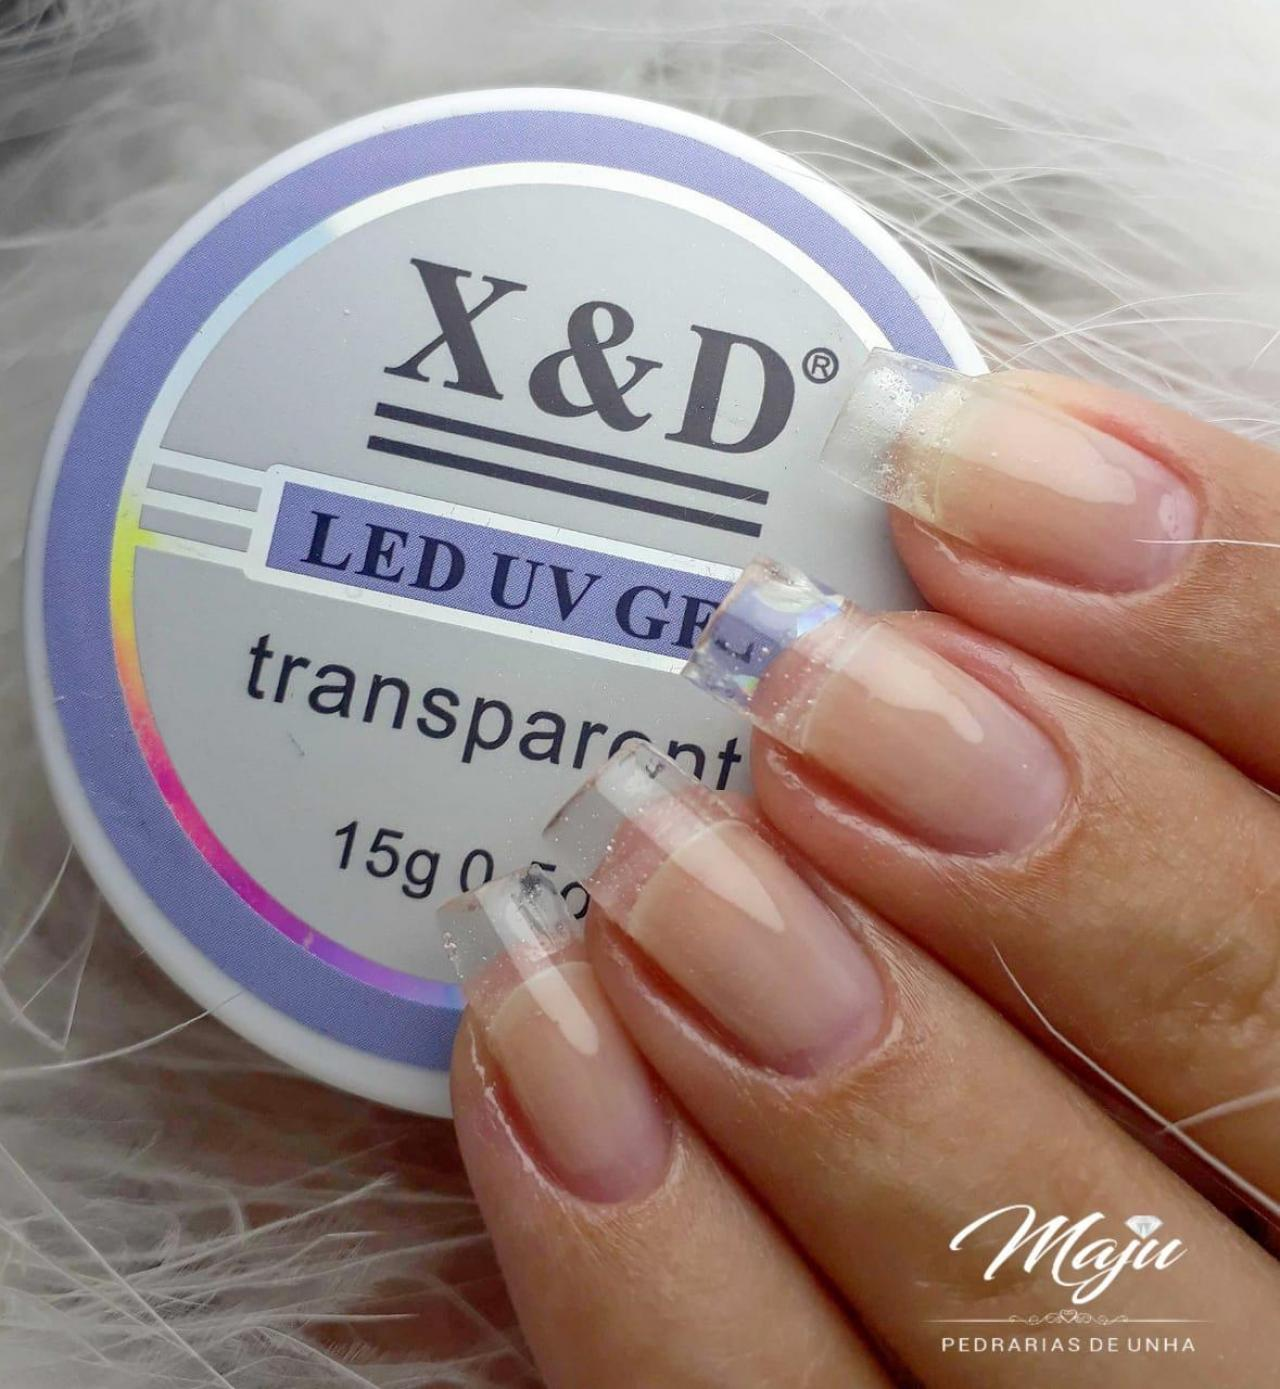 LED UV GEL X&D TRANSPARENTE 15G.